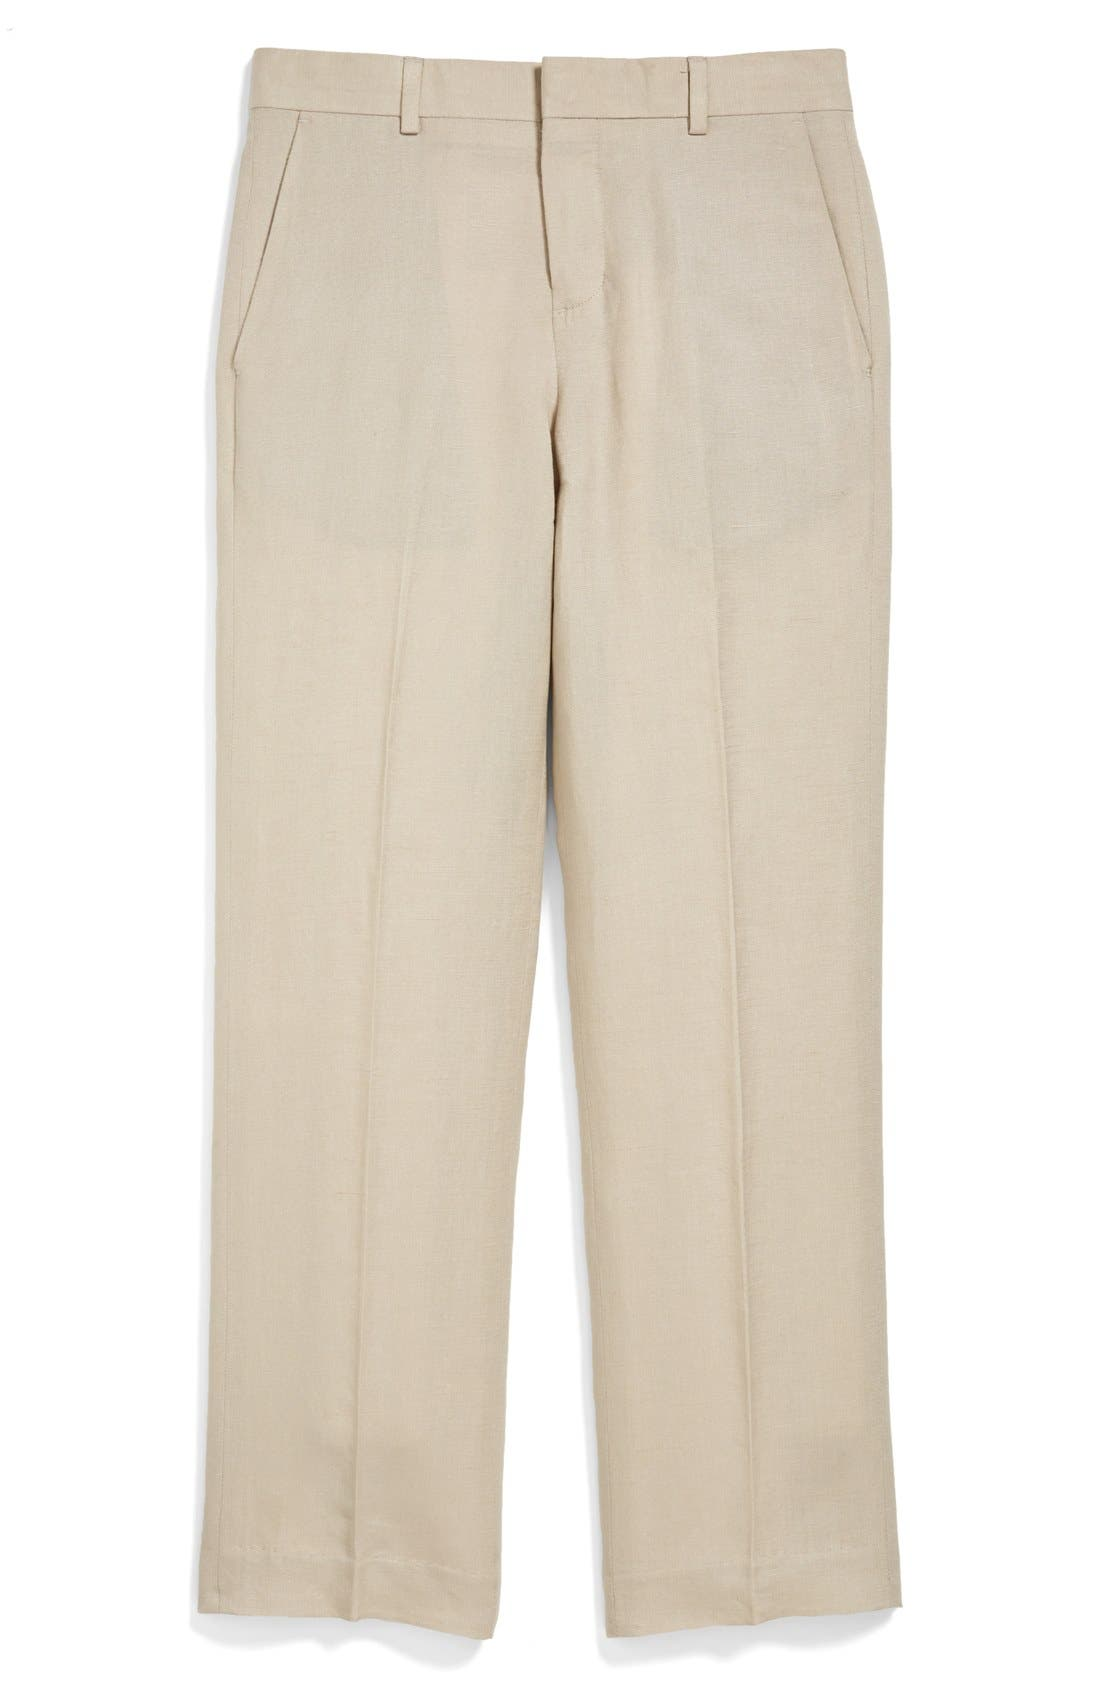 NORDSTROM 'Quentin' Linen Blend Trousers, Main, color, 250